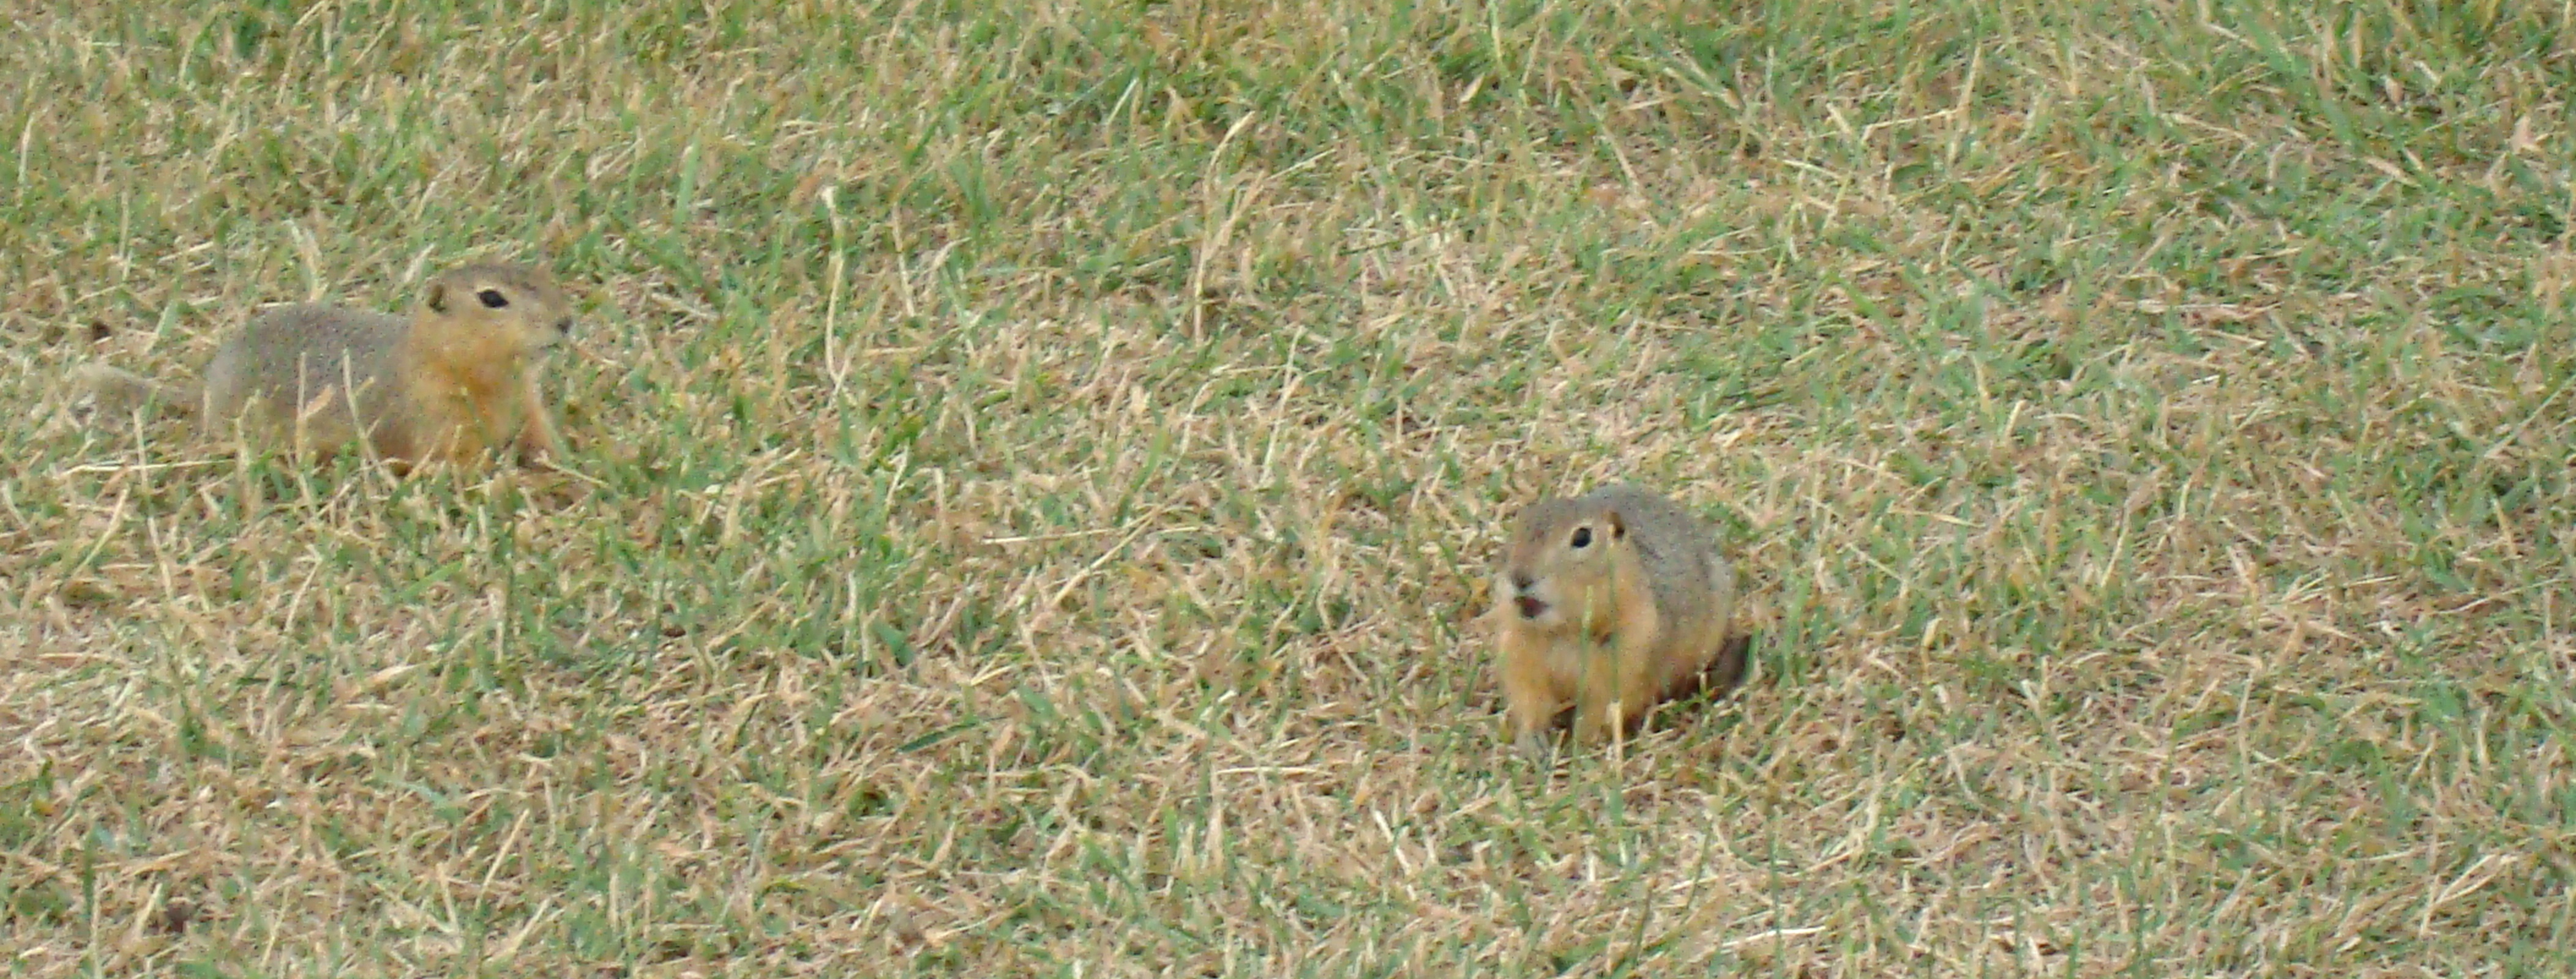 Gophers in the park in Winnipeg, Canada